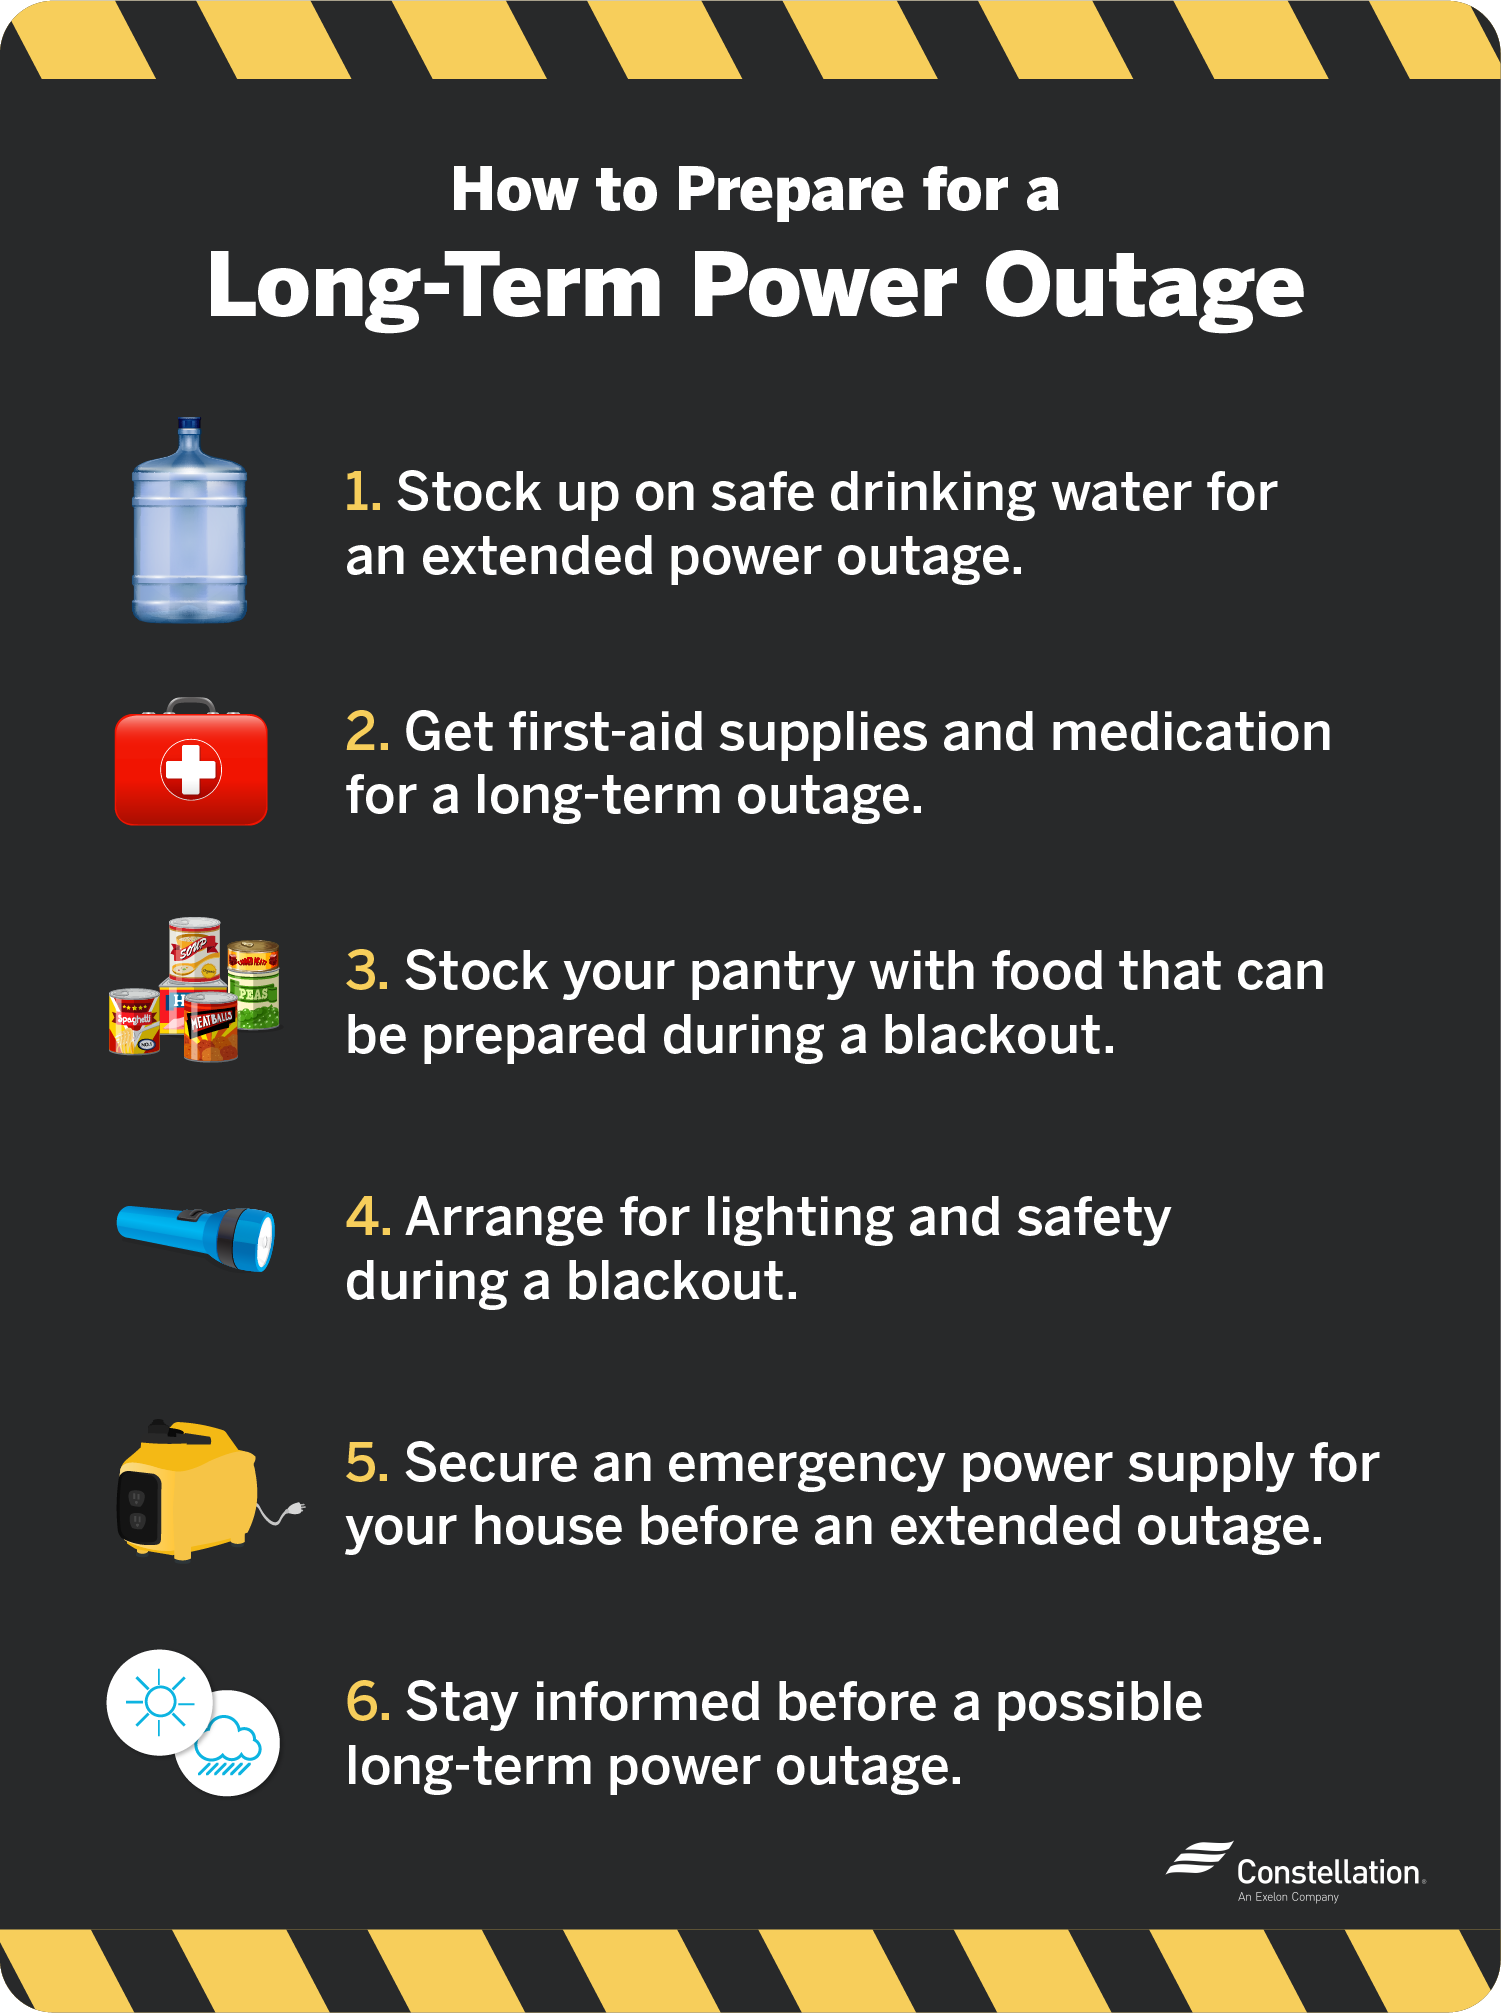 how to prepare for a long-term power outage